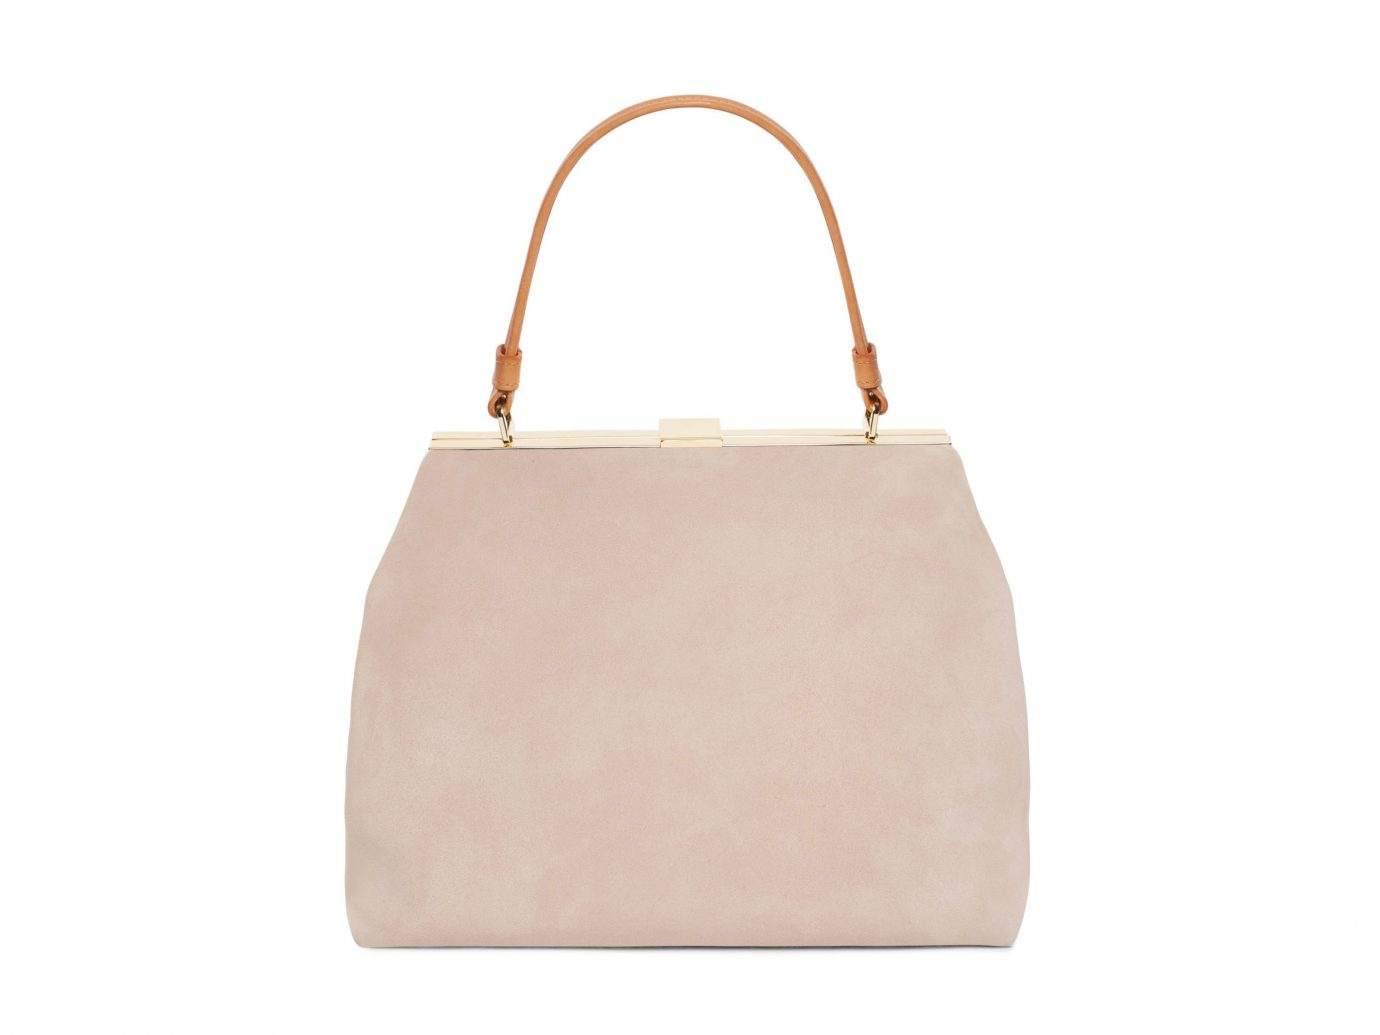 Mansur Gavriel sample sale Suede Elegant Bag